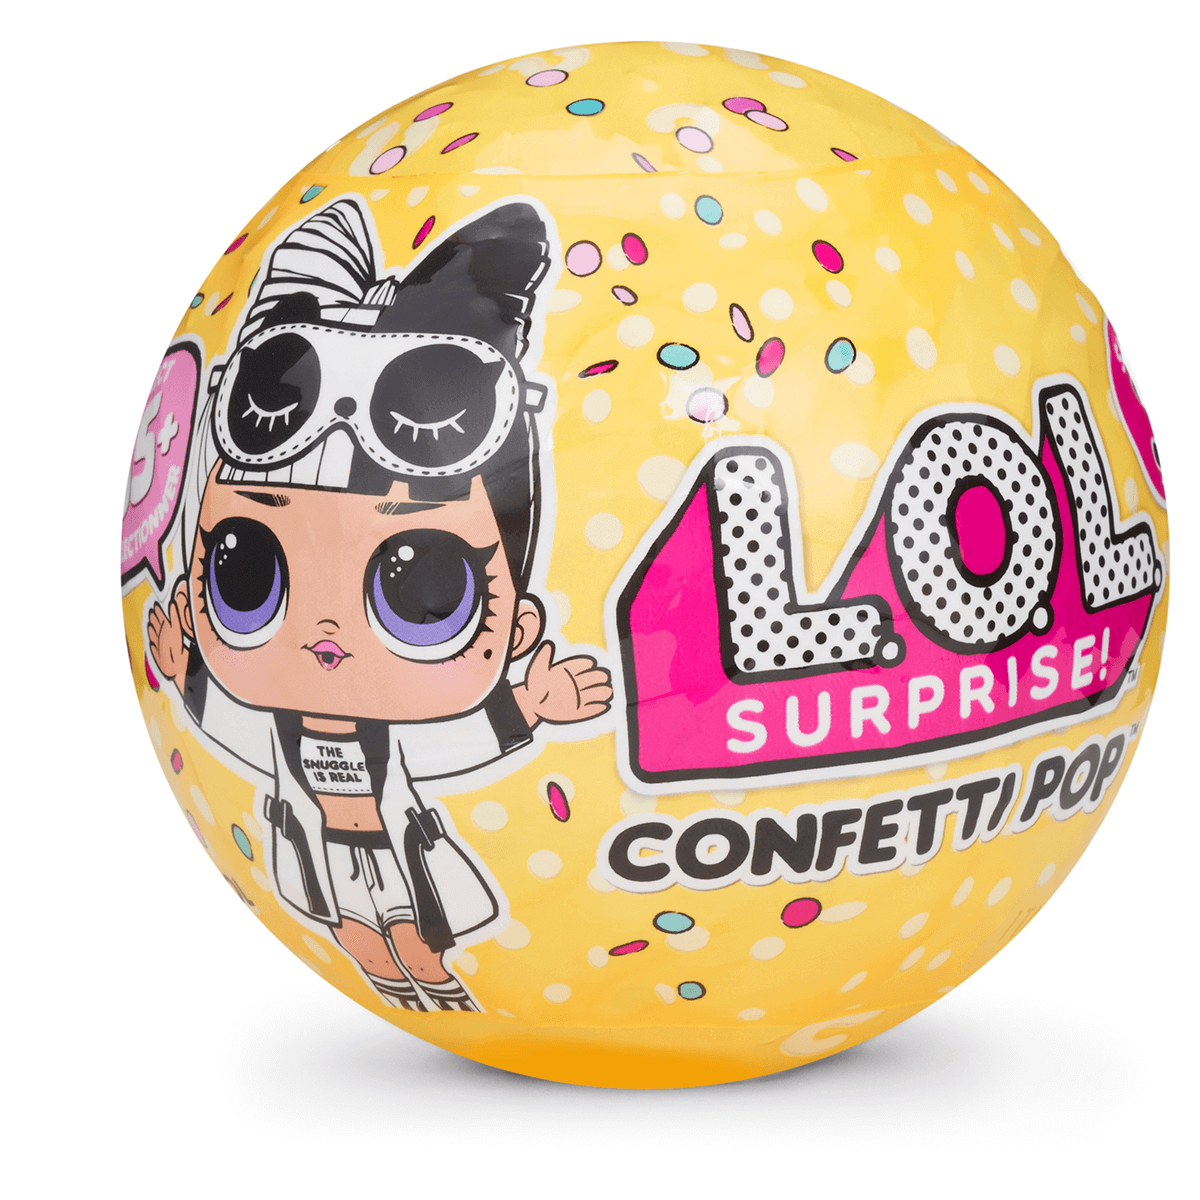 Lol toys images  LOL Surprise Series  Confetti Pop  LOL Surprise Dolls